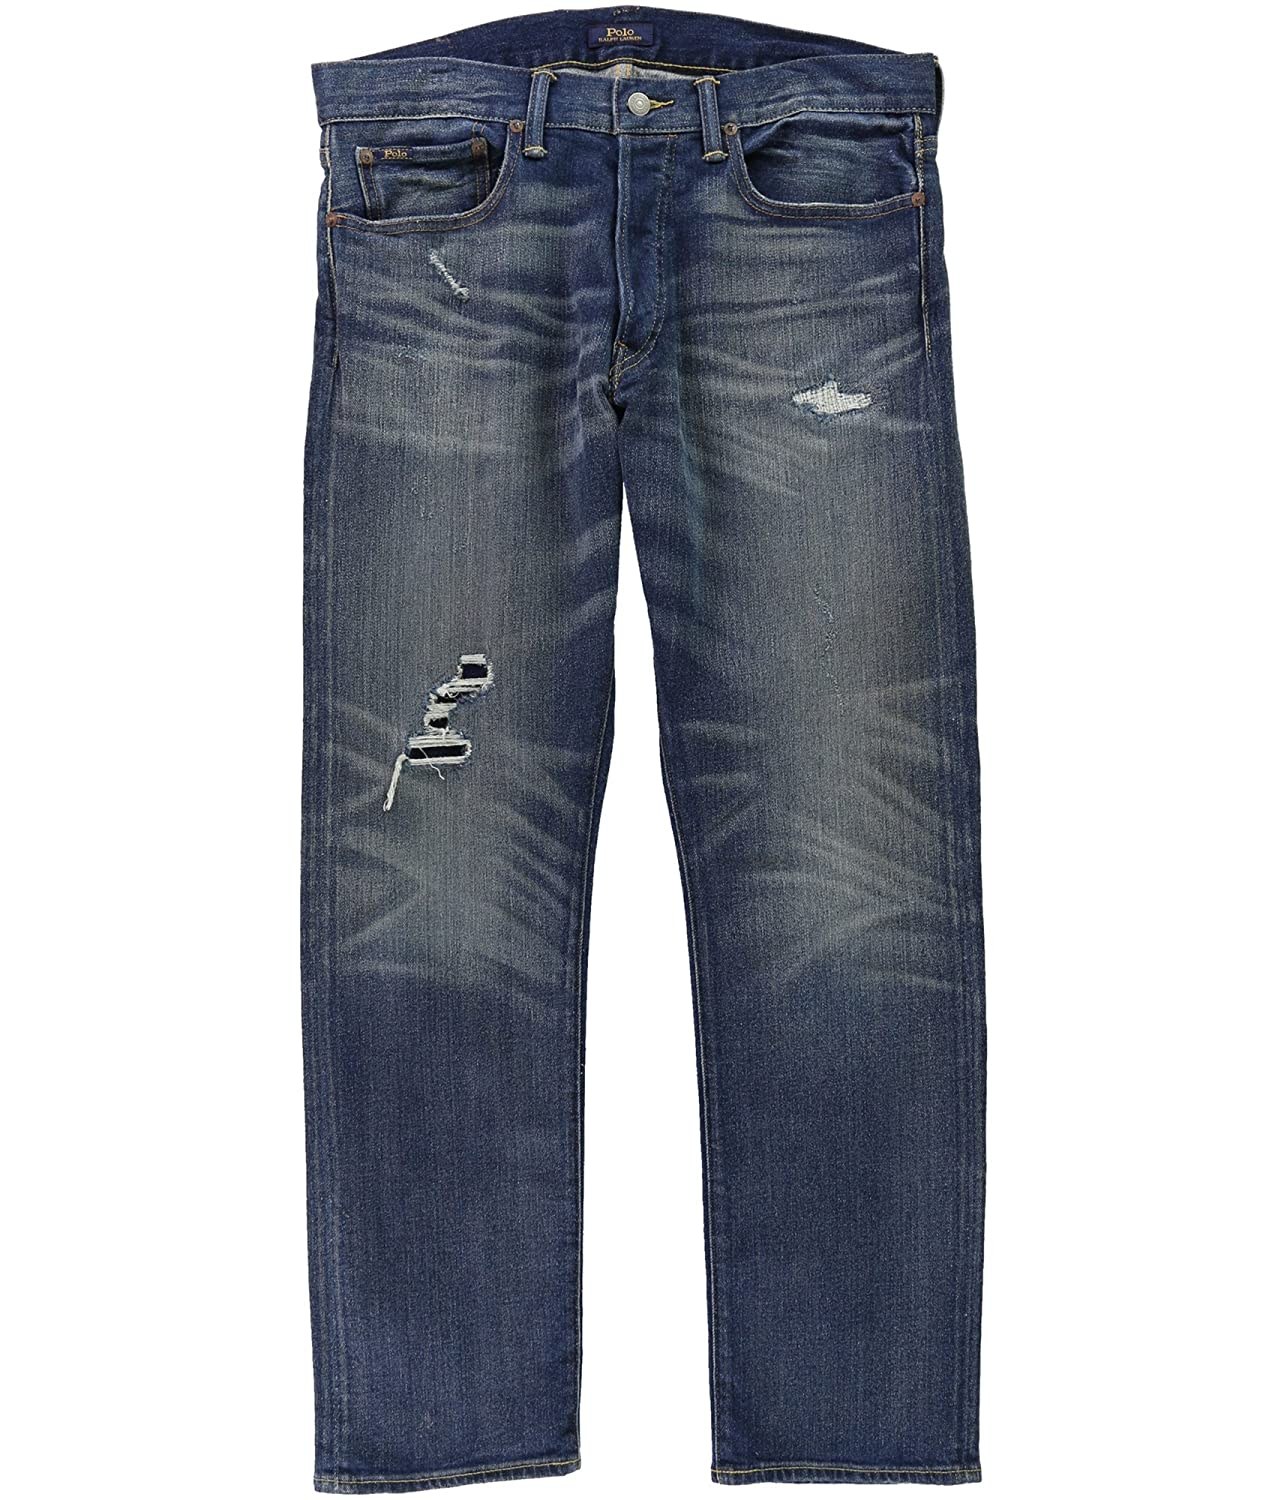 db5e5235911 ... Jeans. Wholesale Price:61.36. Cotton/elastane. Varick Slim Straight:  sits slightly below the waist; slim through the thigh and slightly tapered  from the ...